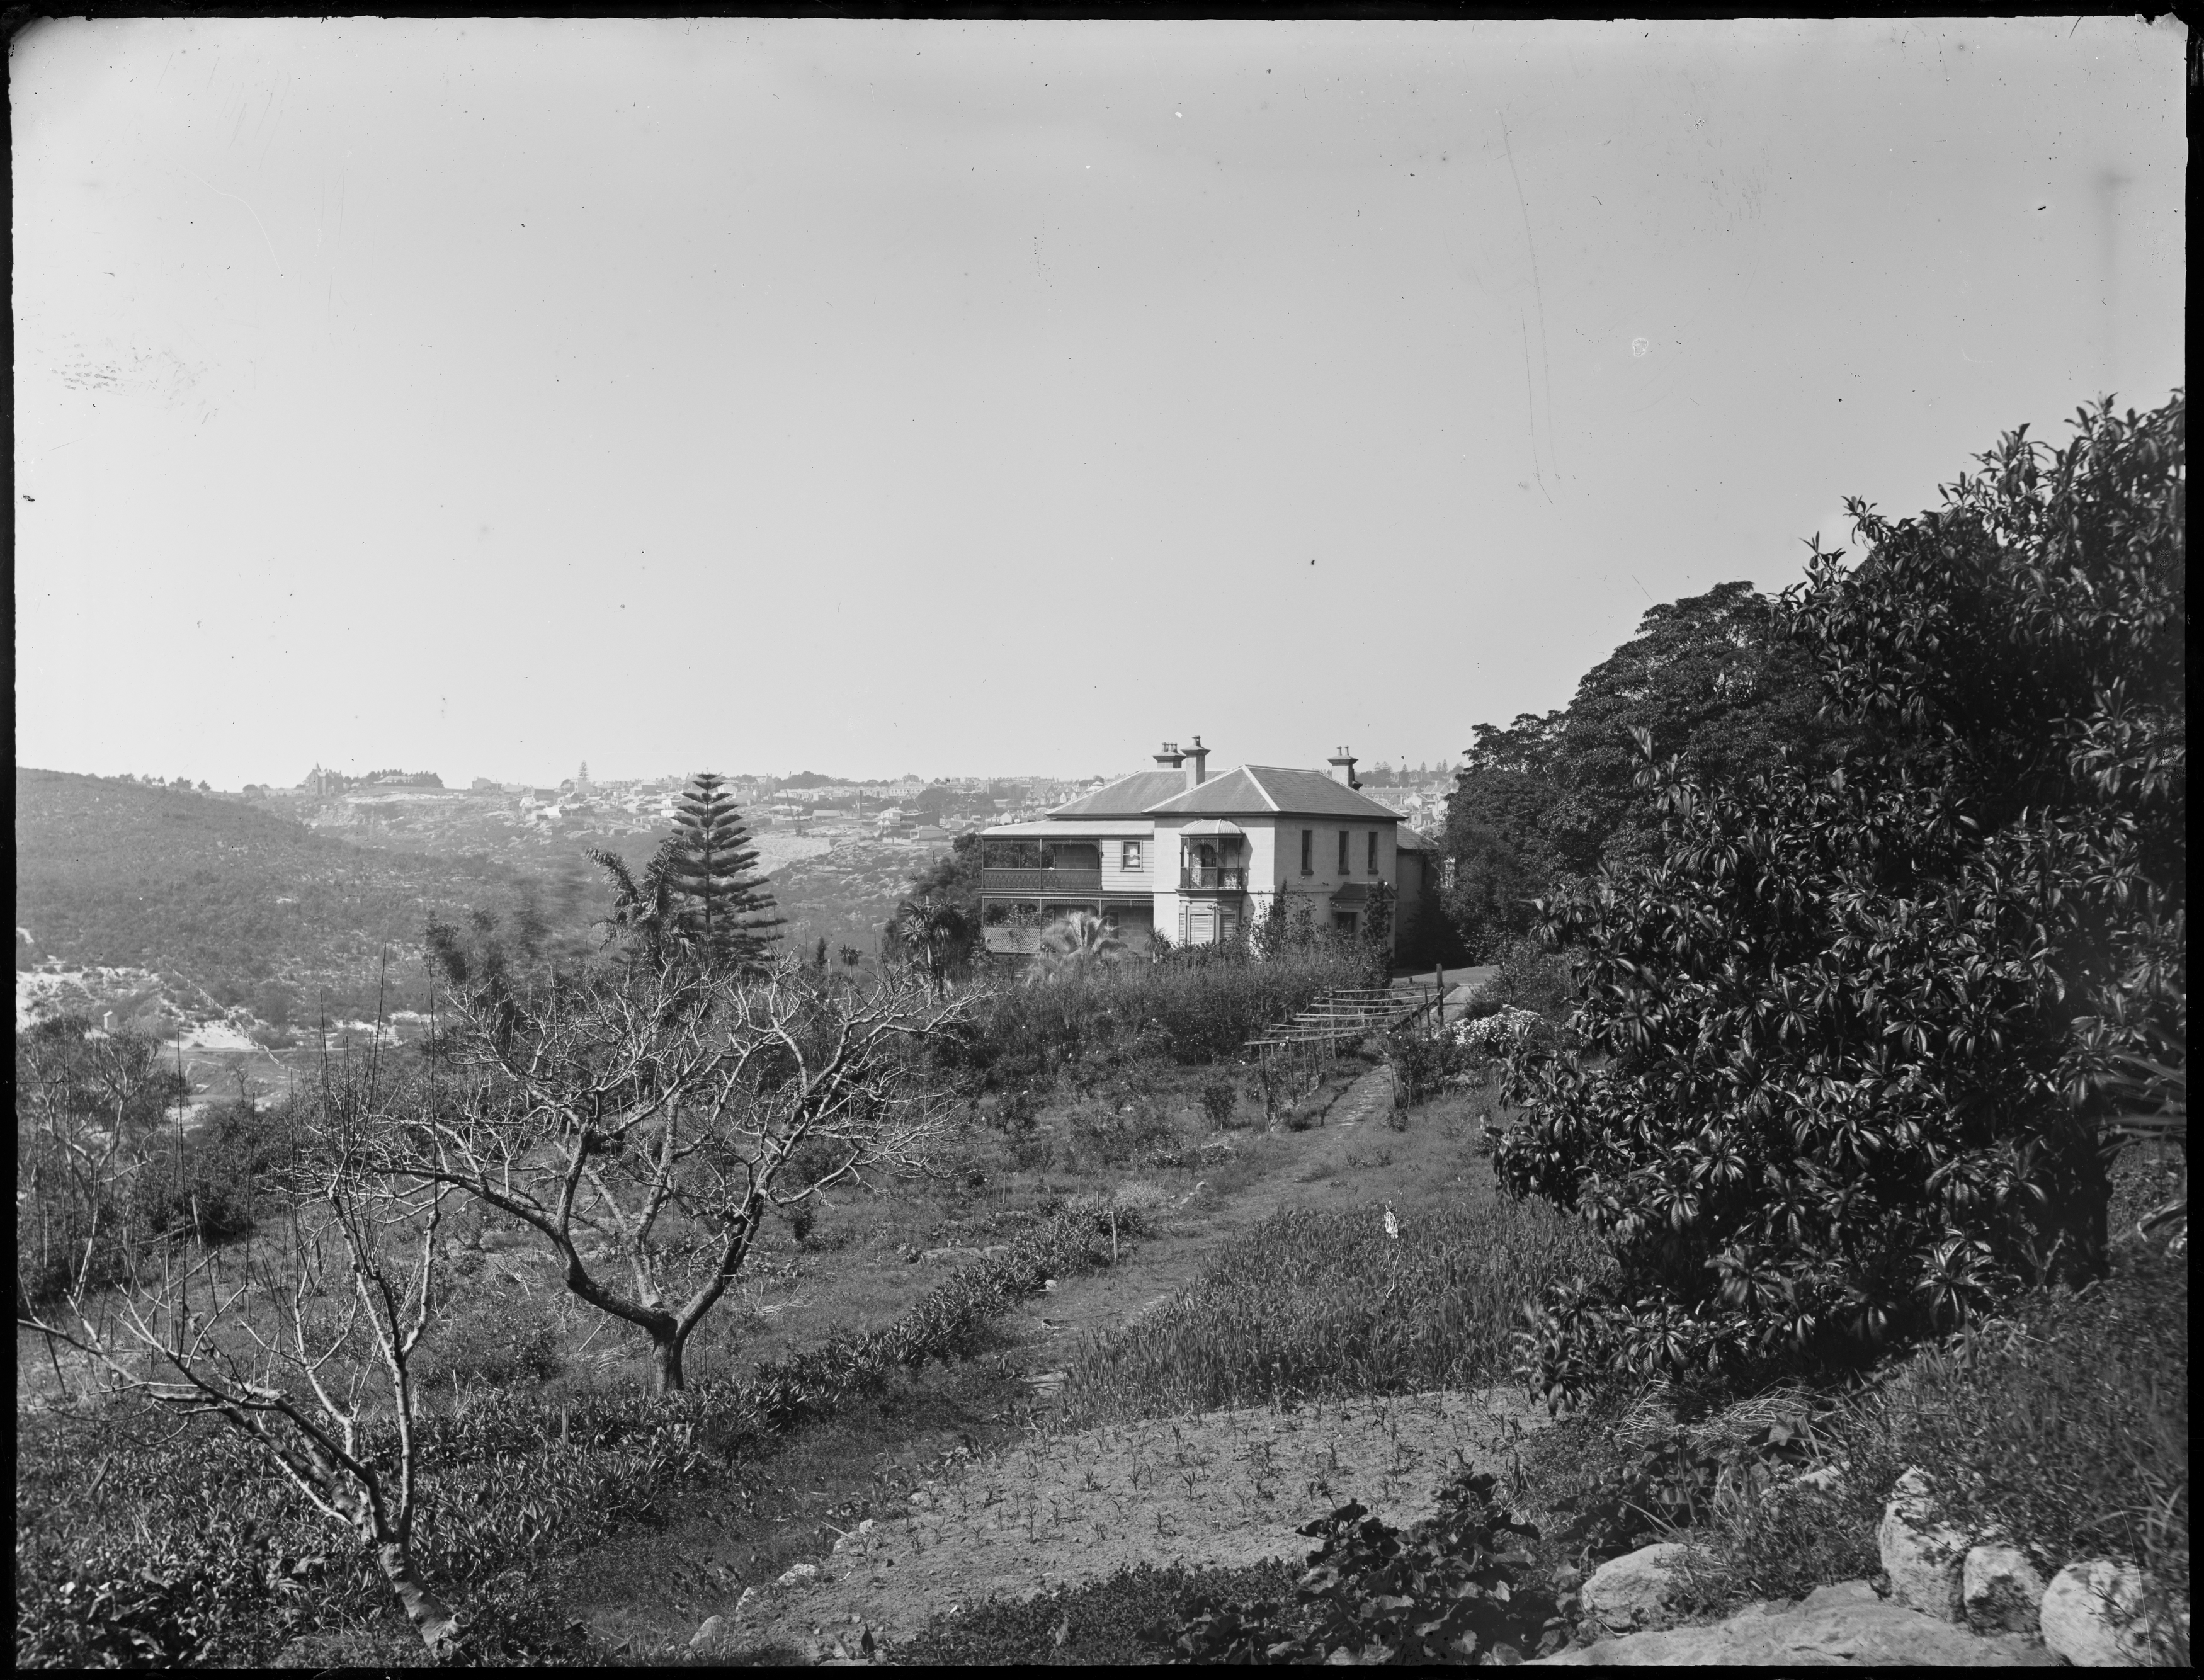 Glass negatives including images of the Sydney and Blue Mountains regions, ca 1890-1910, by William Joseph Macpherson